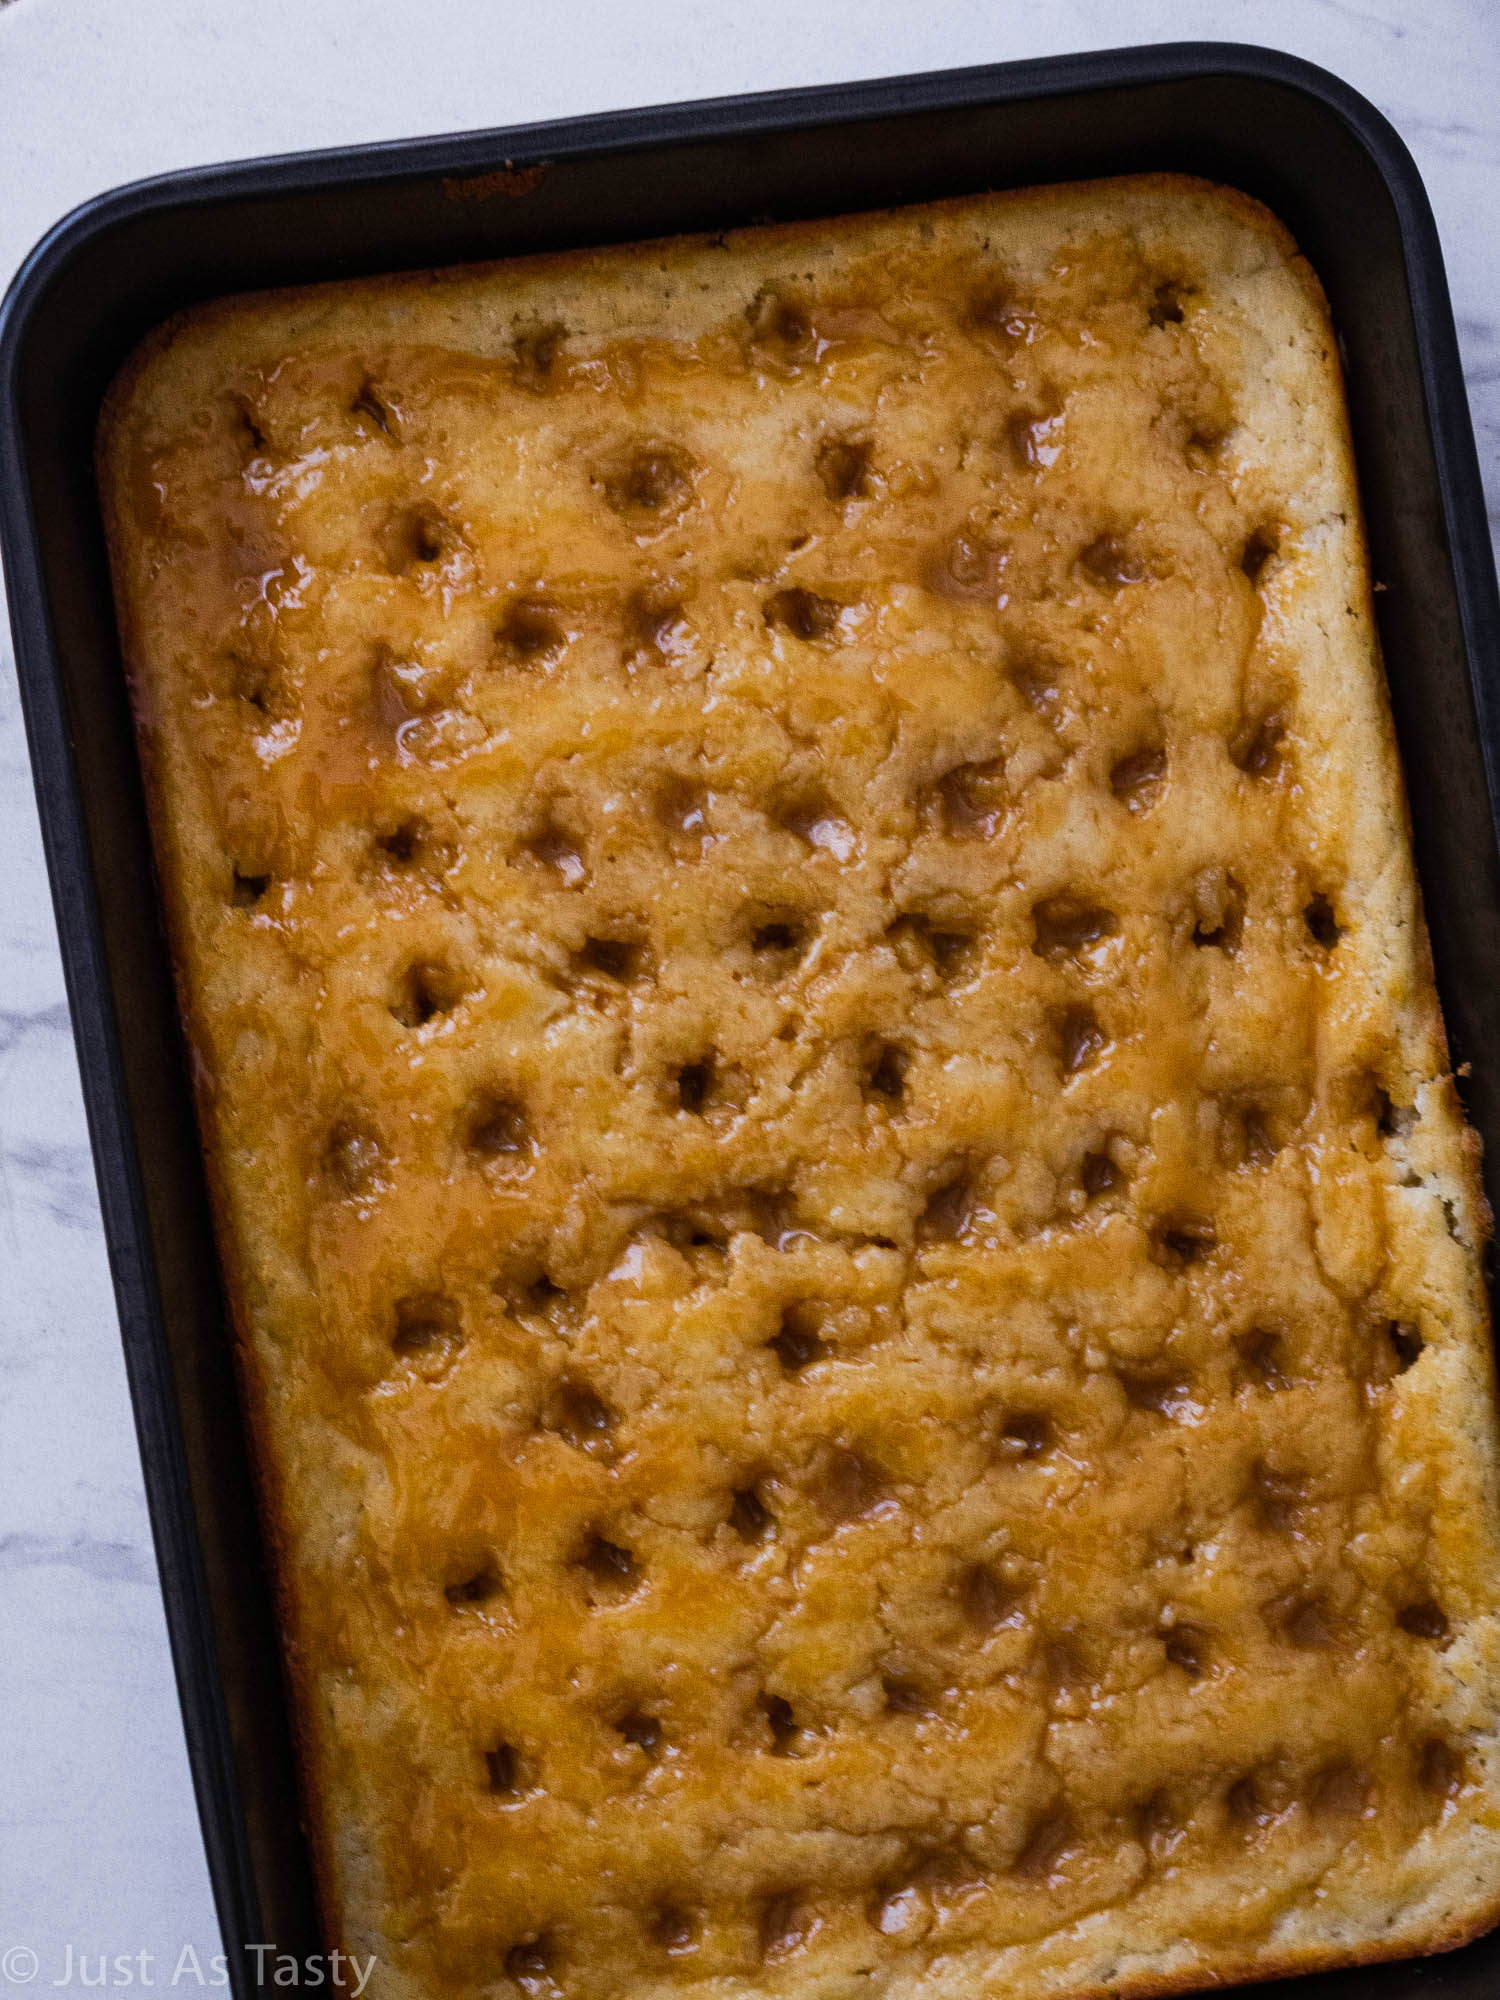 Sheet cake with holes poked all over surface and caramel sauce drizzled on top.